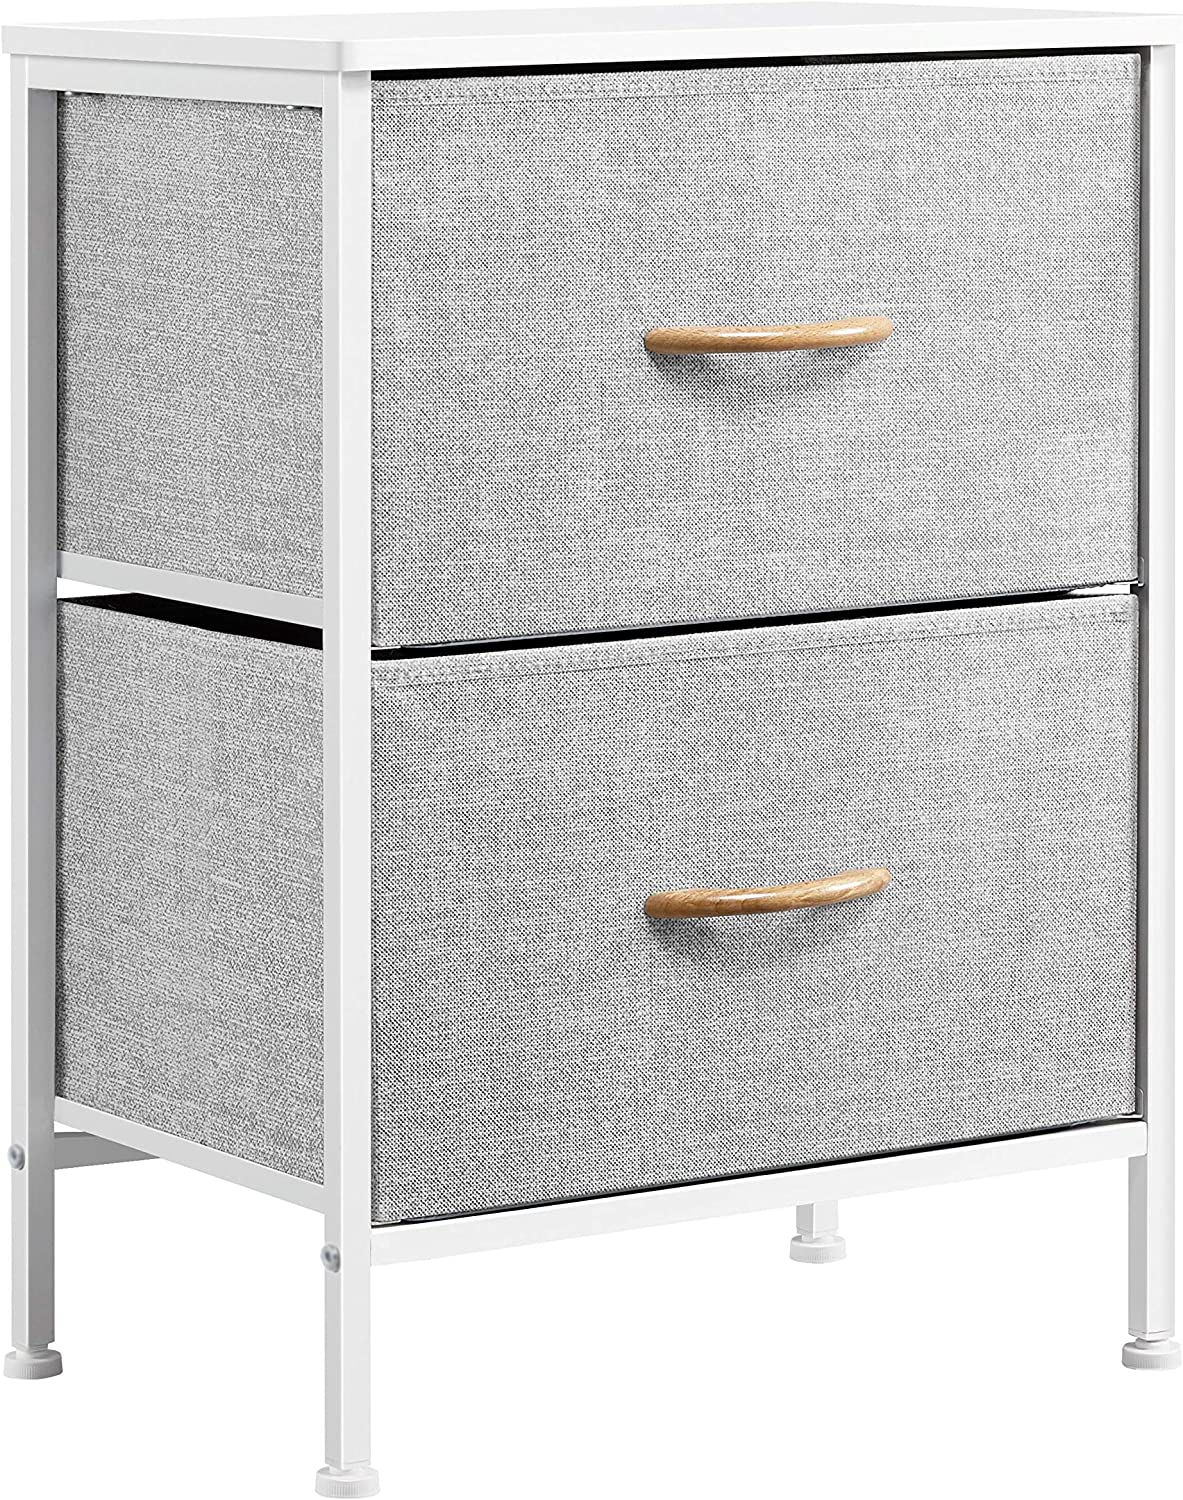 Topeakmart 2-Drawer Nightstand Special Directly managed store sale item End Stor Dresser Vertical Table